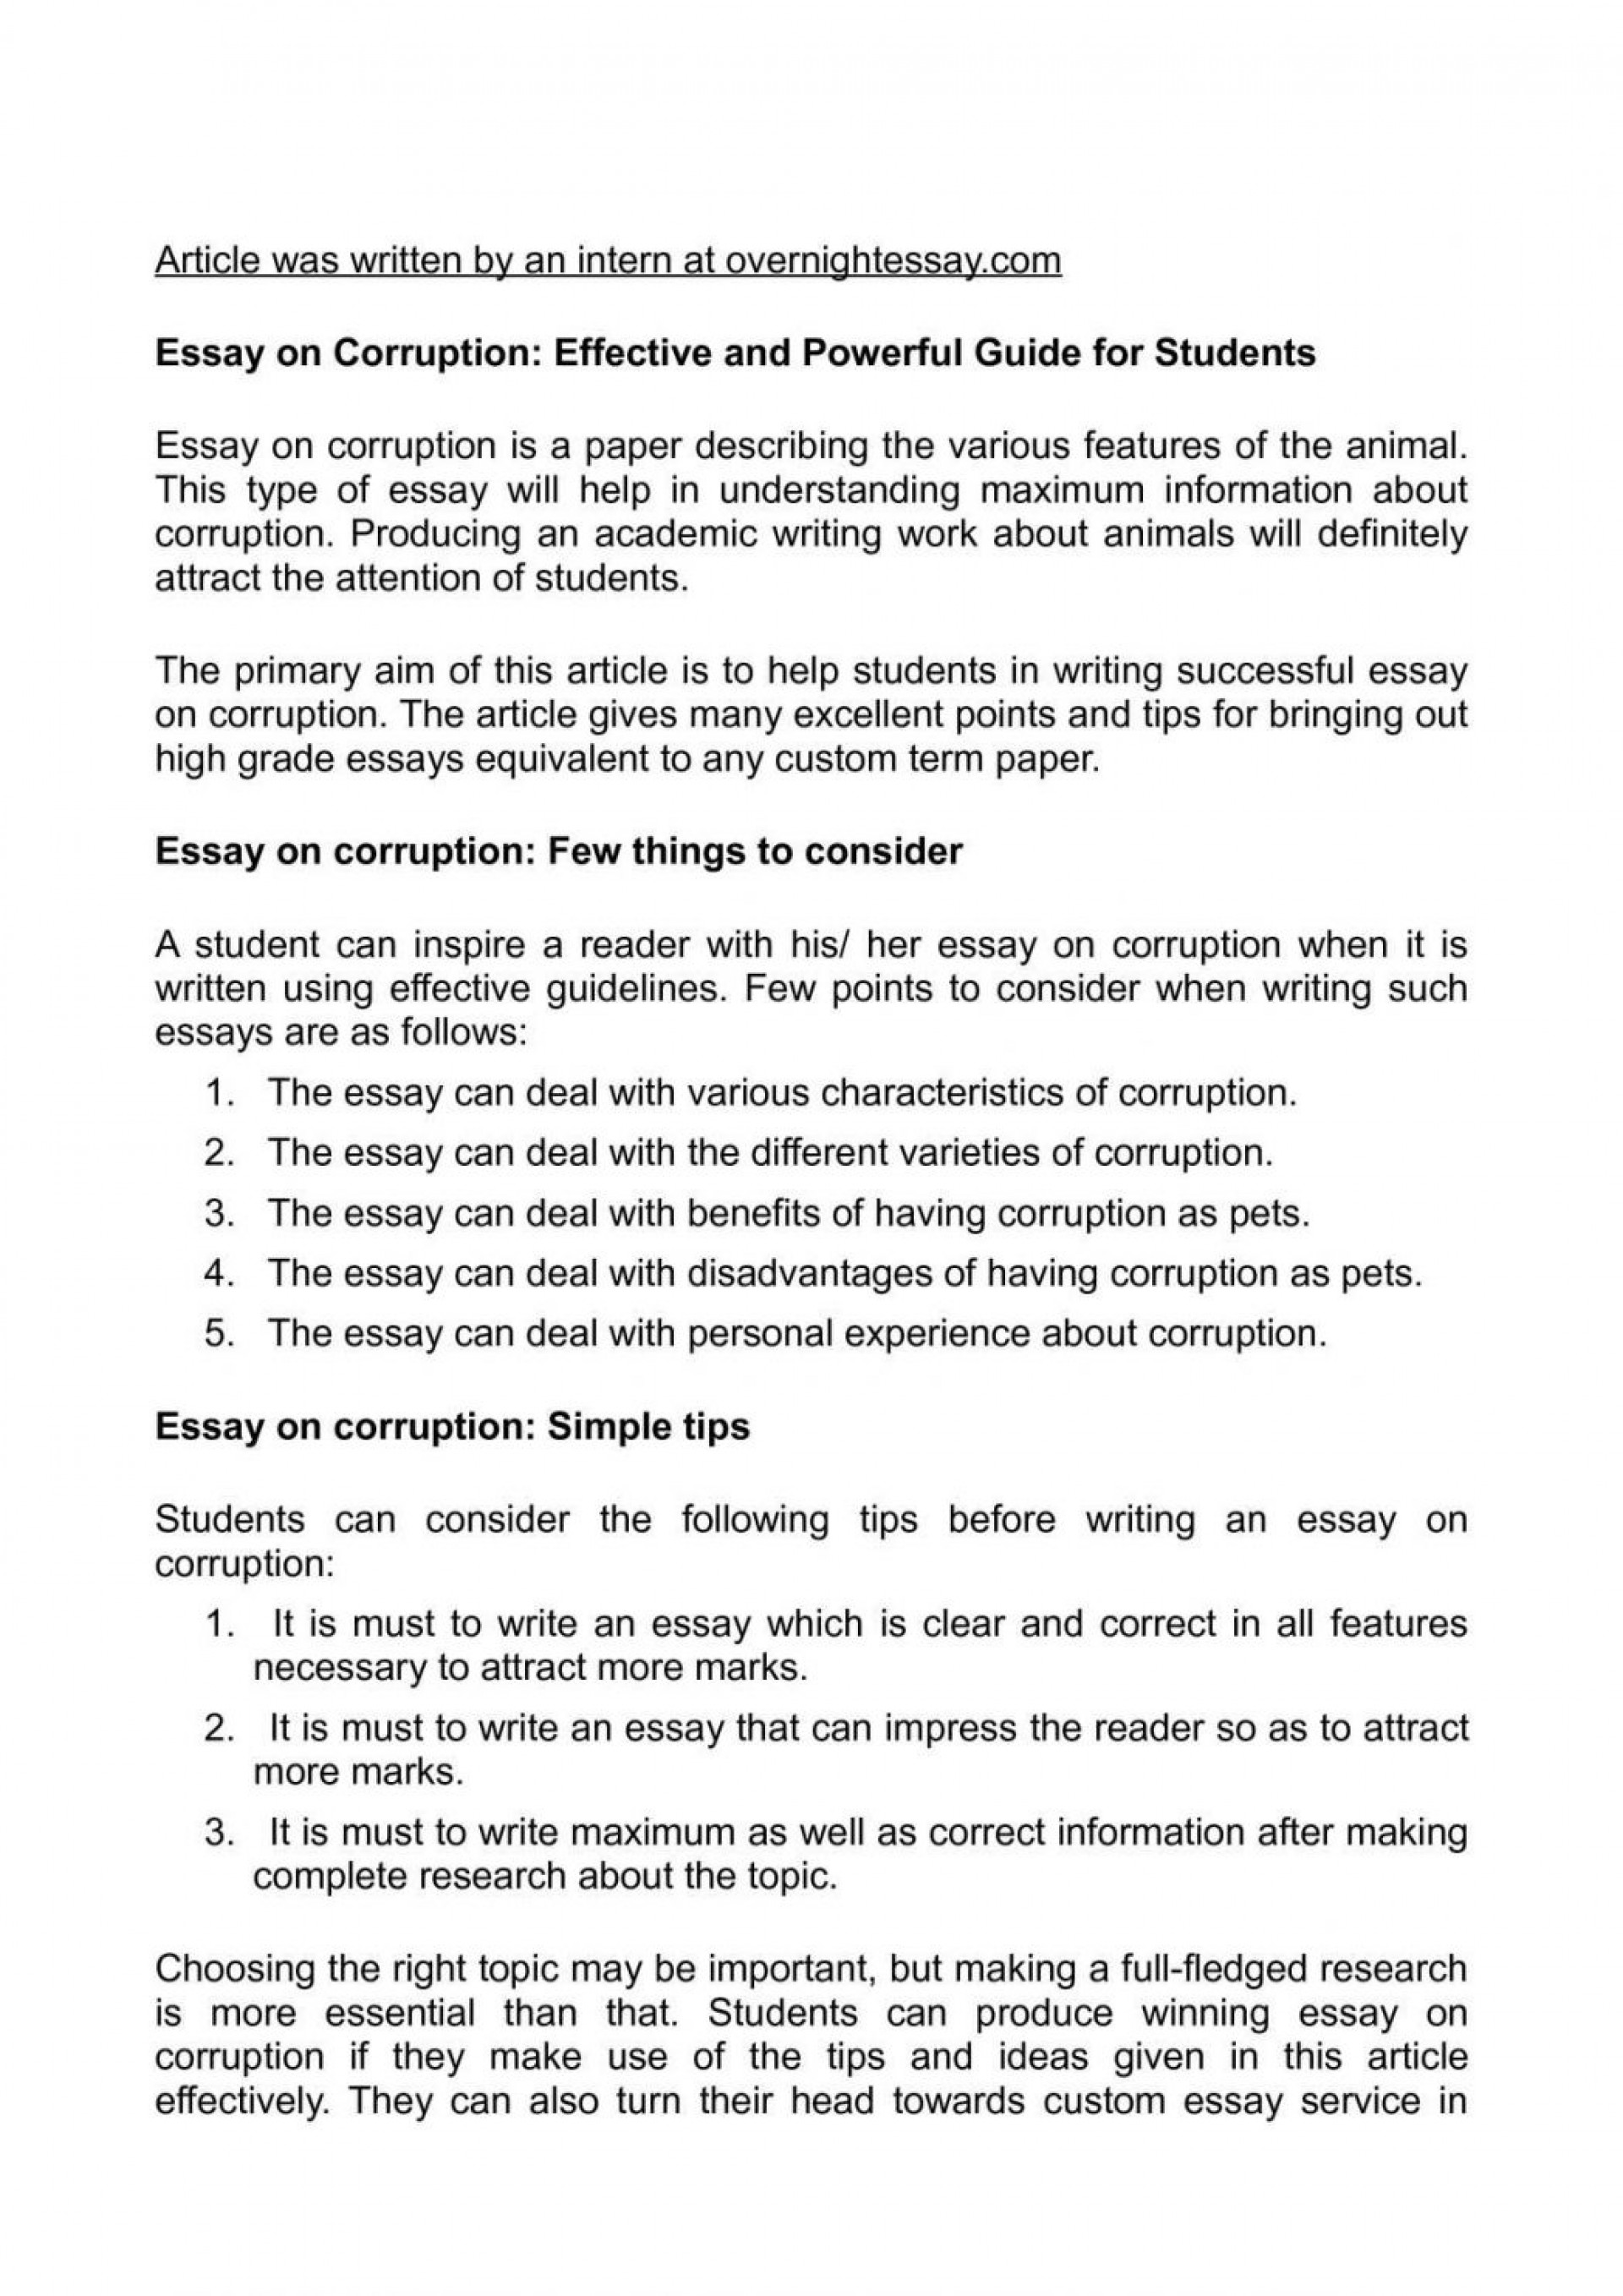 015 How To Write This I Believe Essay Easy Essays Calam Atilde Copy O On Corruption Effective Samples Good Topics Template 1048x1483 Fantastic A Things What 1920